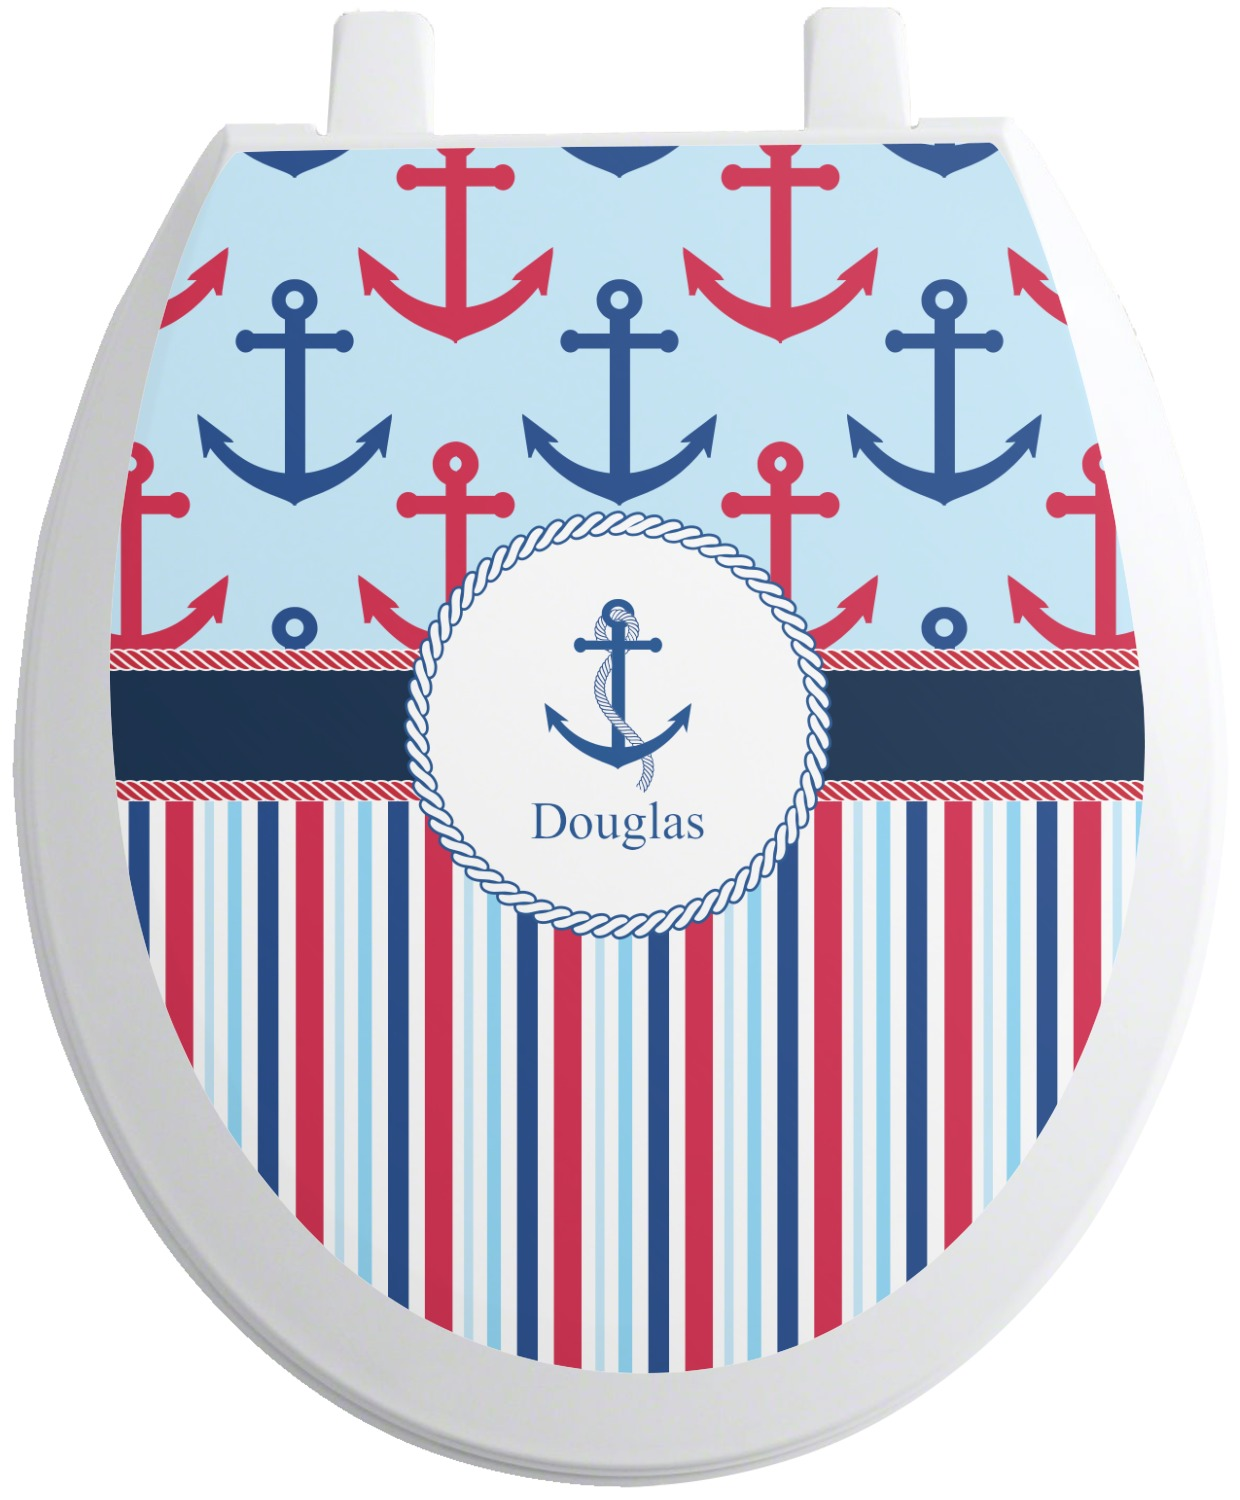 Fantastic Anchors Stripes Toilet Seat Decal Personalized Gamerscity Chair Design For Home Gamerscityorg